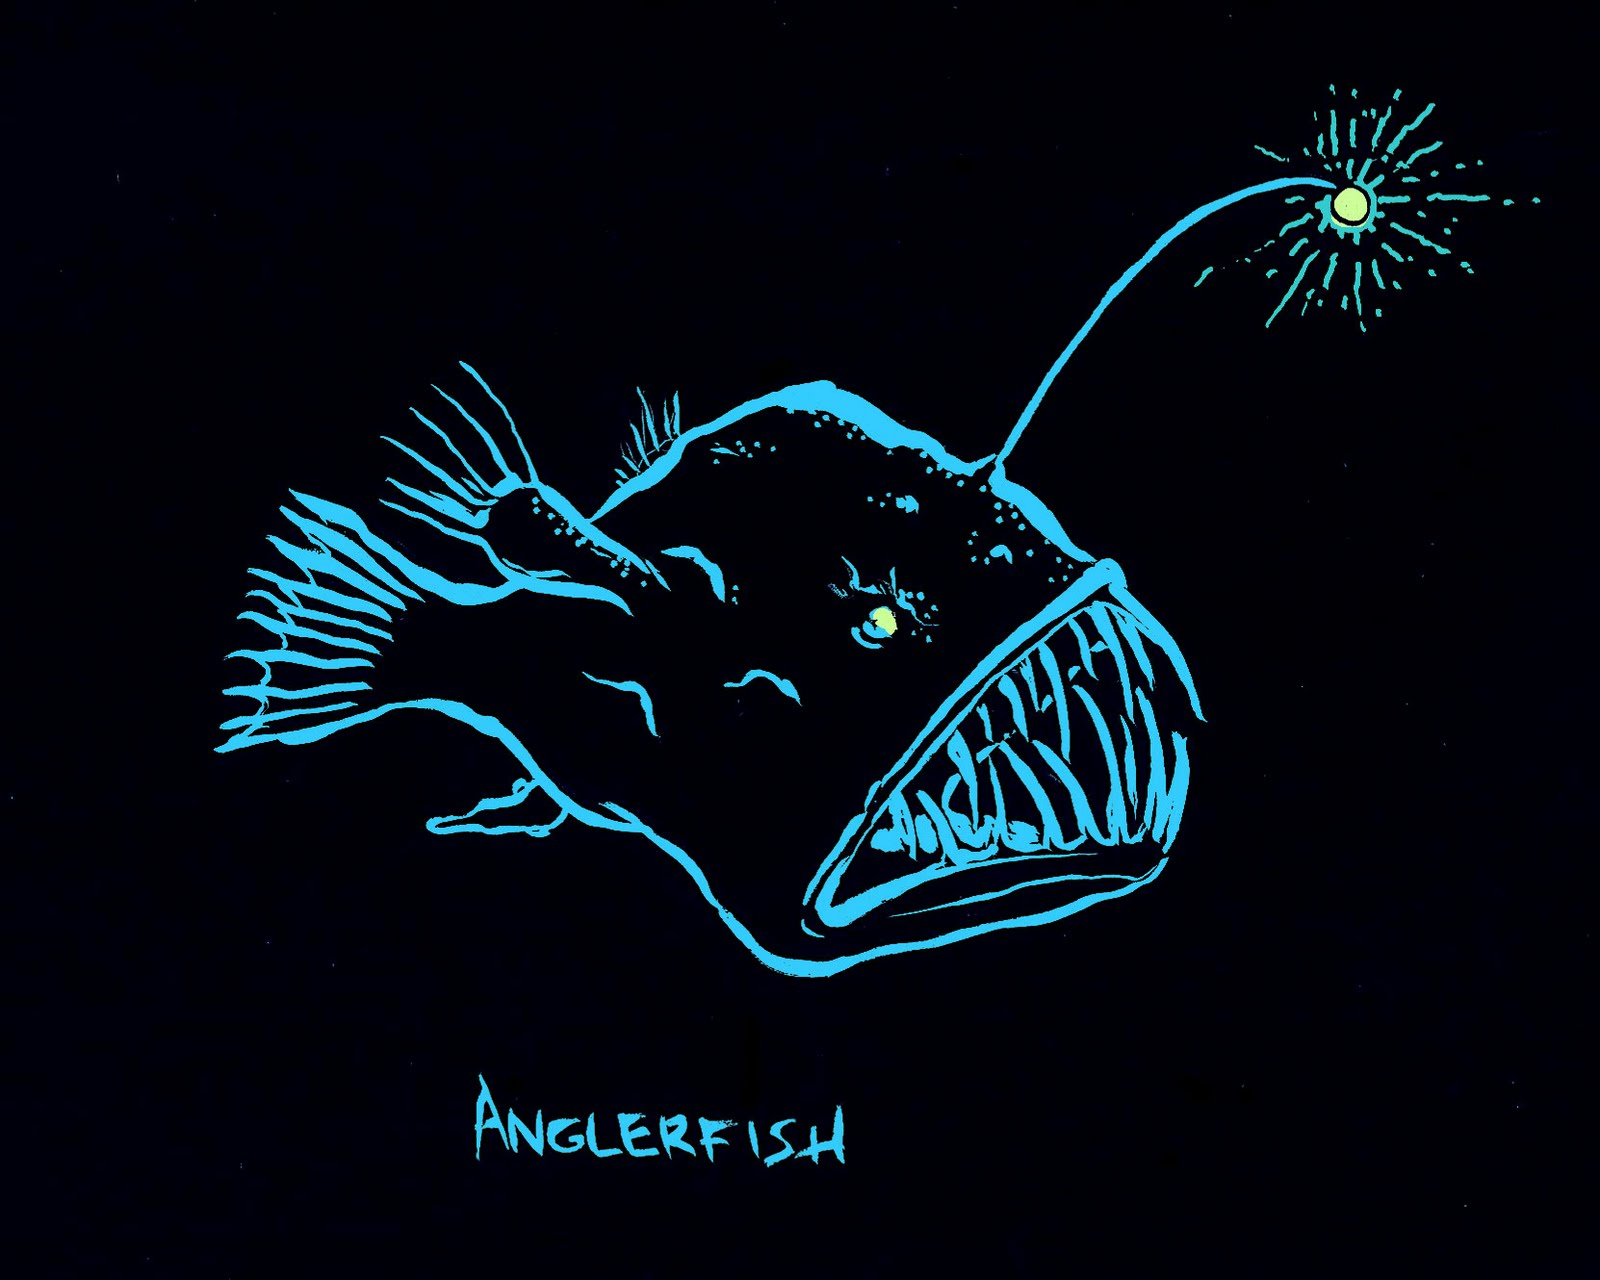 Design brief dragonfish offshore logo stationary a for Angler fish light